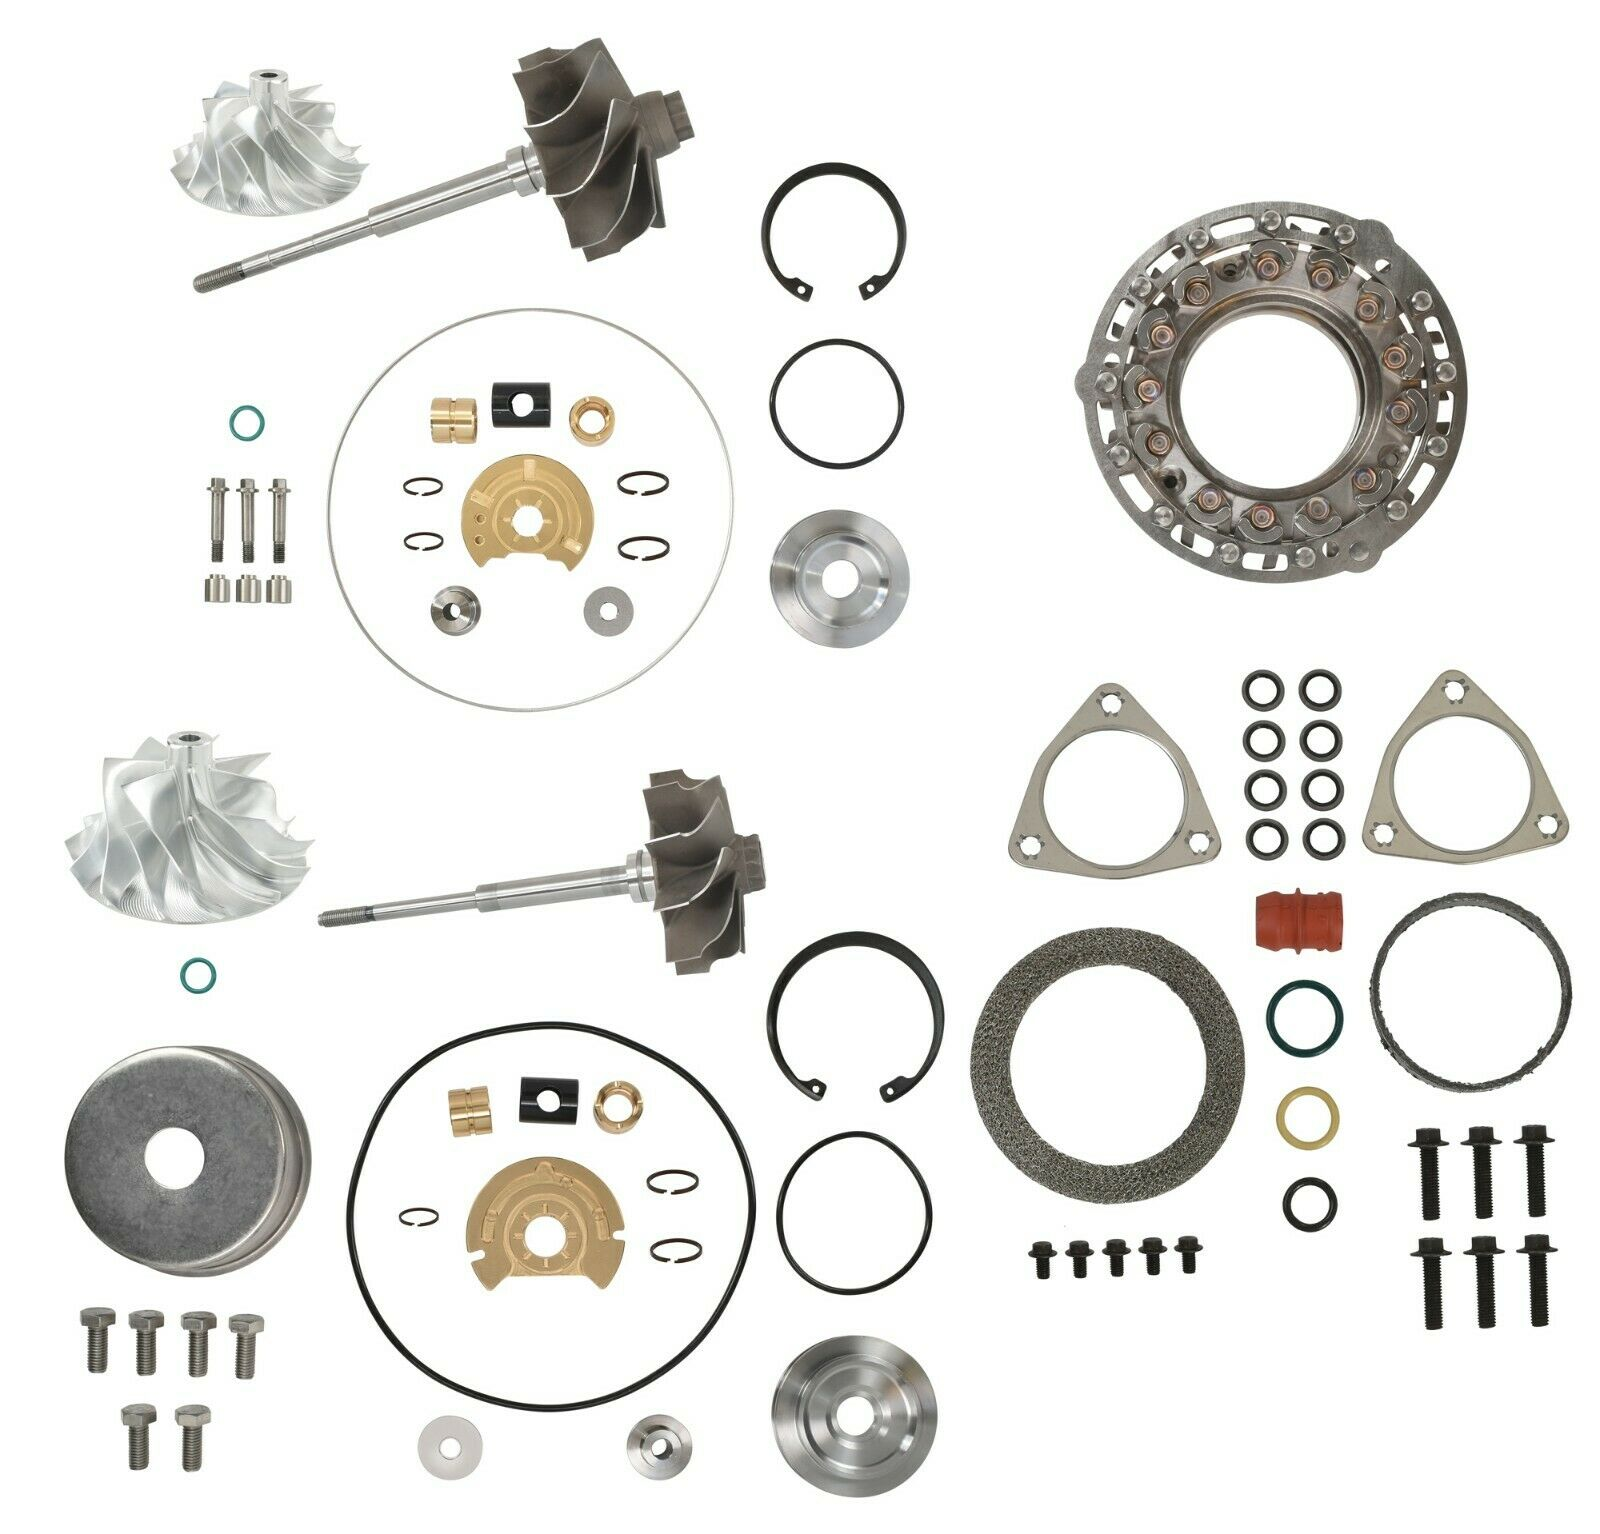 V2S Combo Master Turbo Rebuild Kit Billet For 08-10 6.4L Ford Powerstroke Diesel